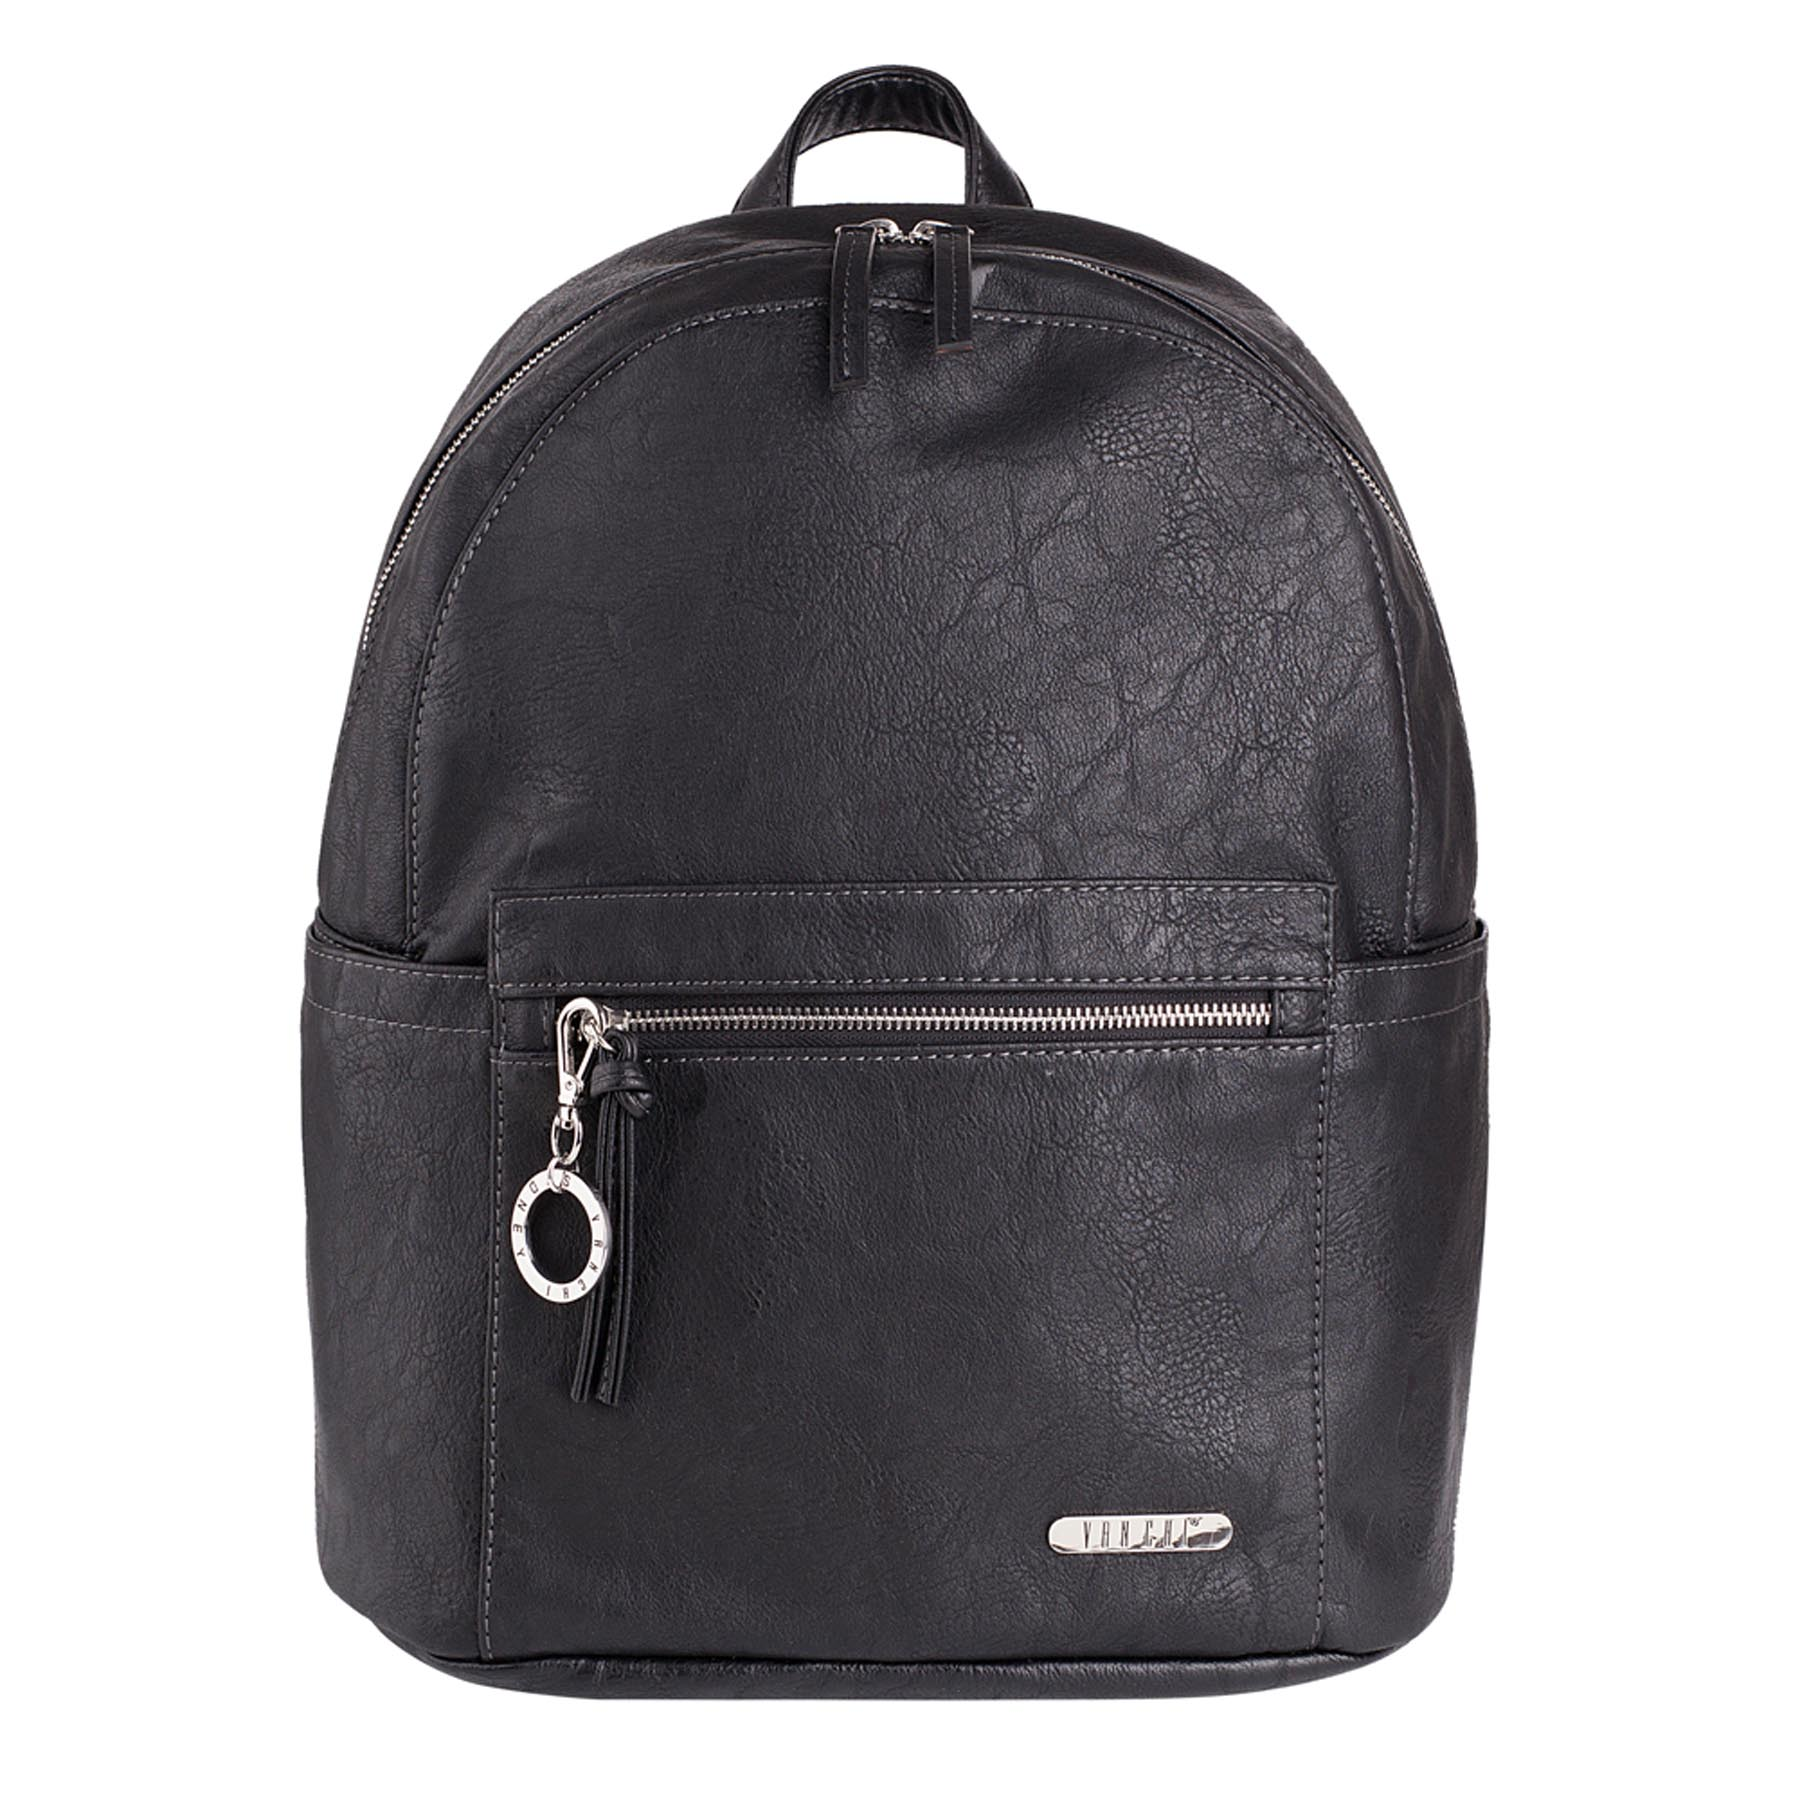 VANCHI MANHATTAN BACKPACK BLACK WWW.MOTHERBYNATURE.COM.AU NAPPY BAG BABY BAG DIAPER BAG VANCHI